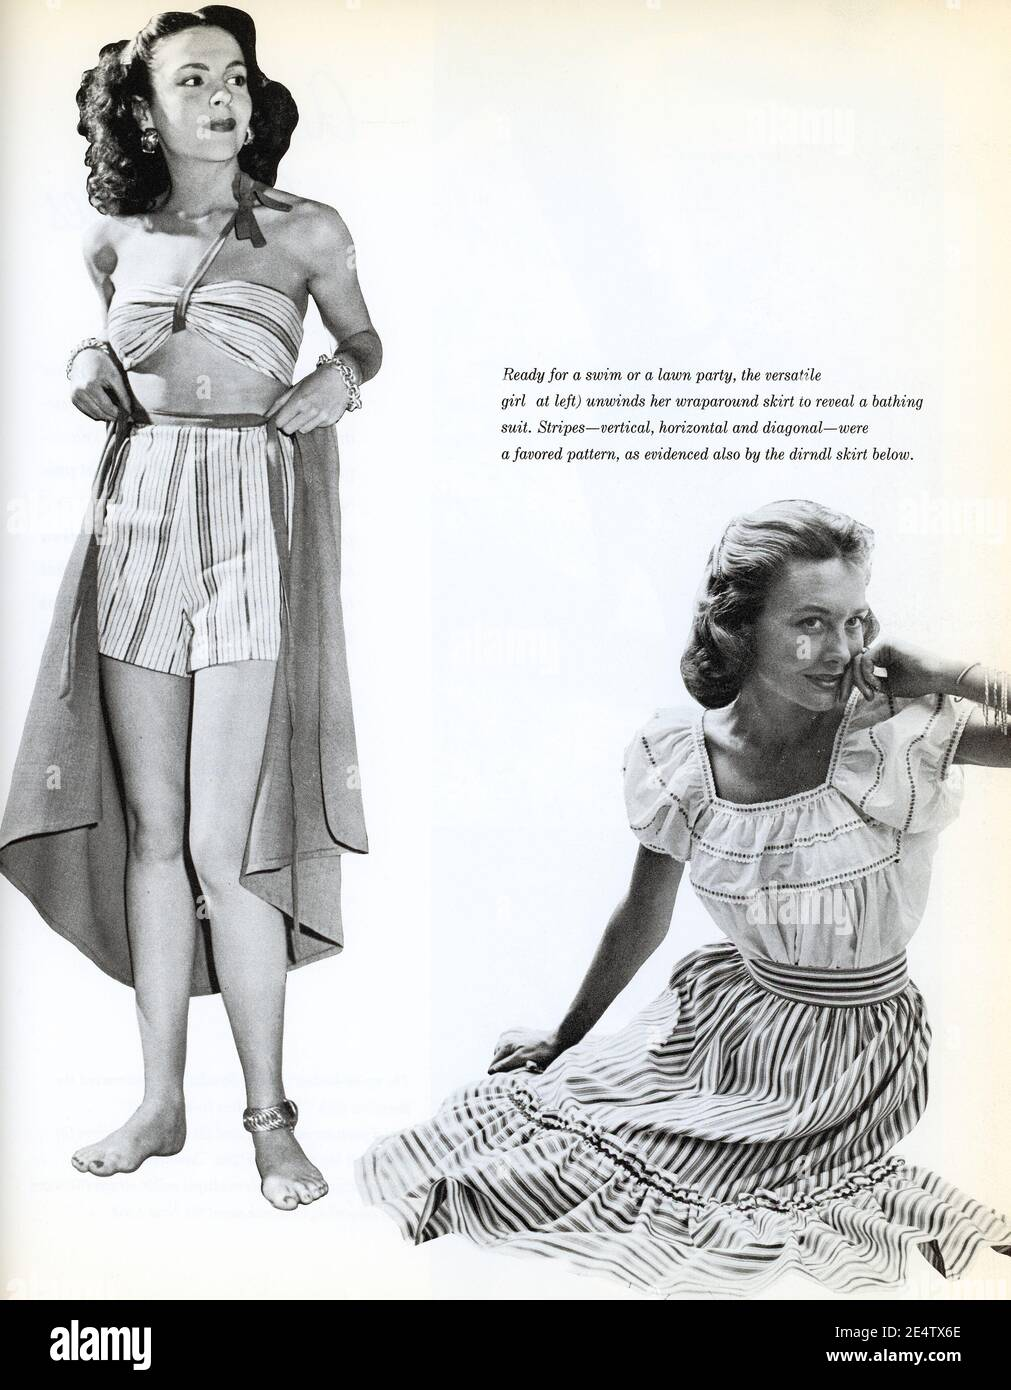 1940s Fashion Advert High Resolution Stock Photography And Images Alamy